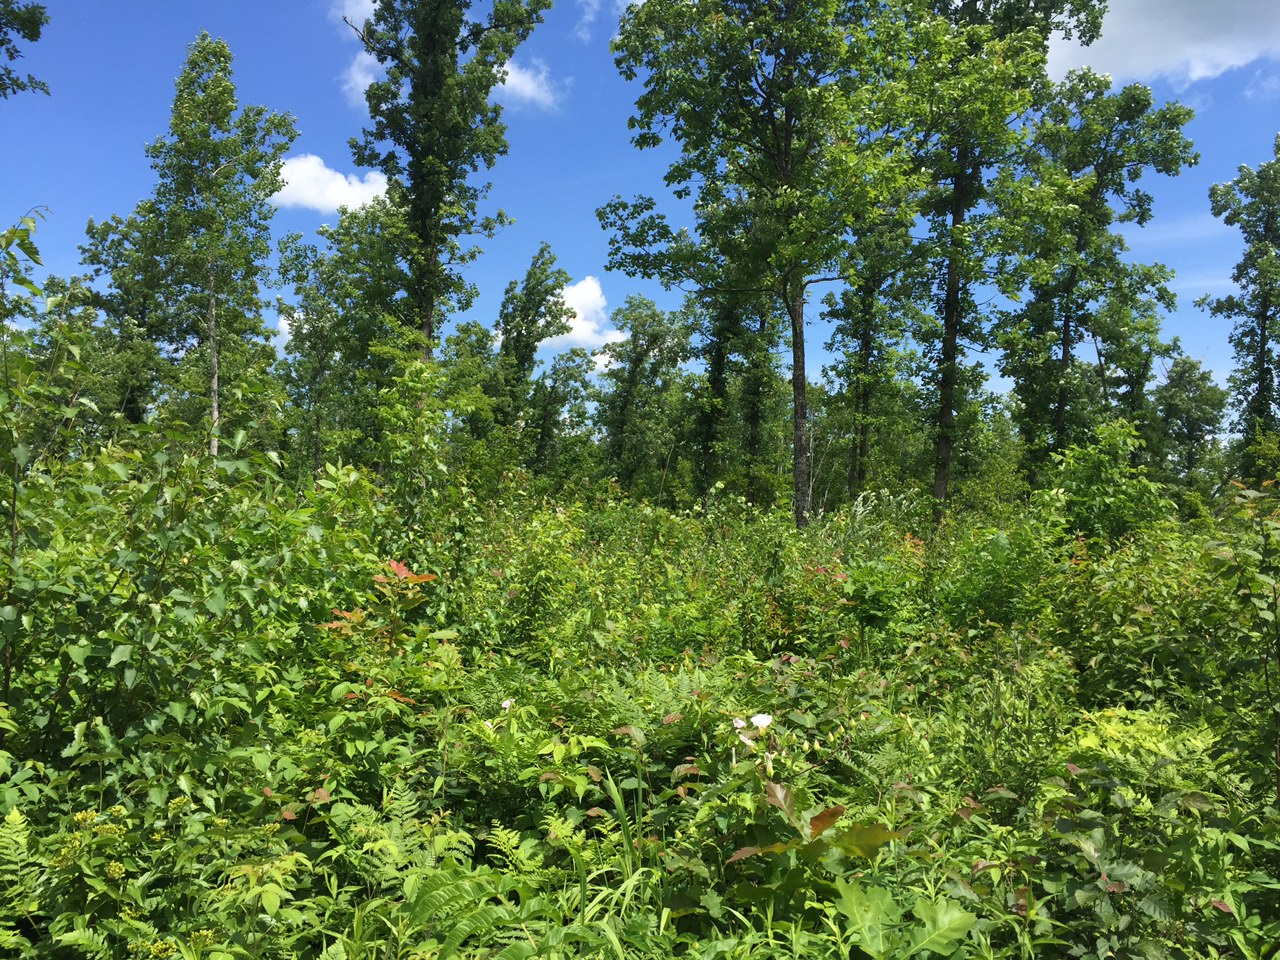 Through sustainable forestry practices, ABC and NRCS are working with landowners to create early successional habitat while leaving behind occasional clusters of mature trees.